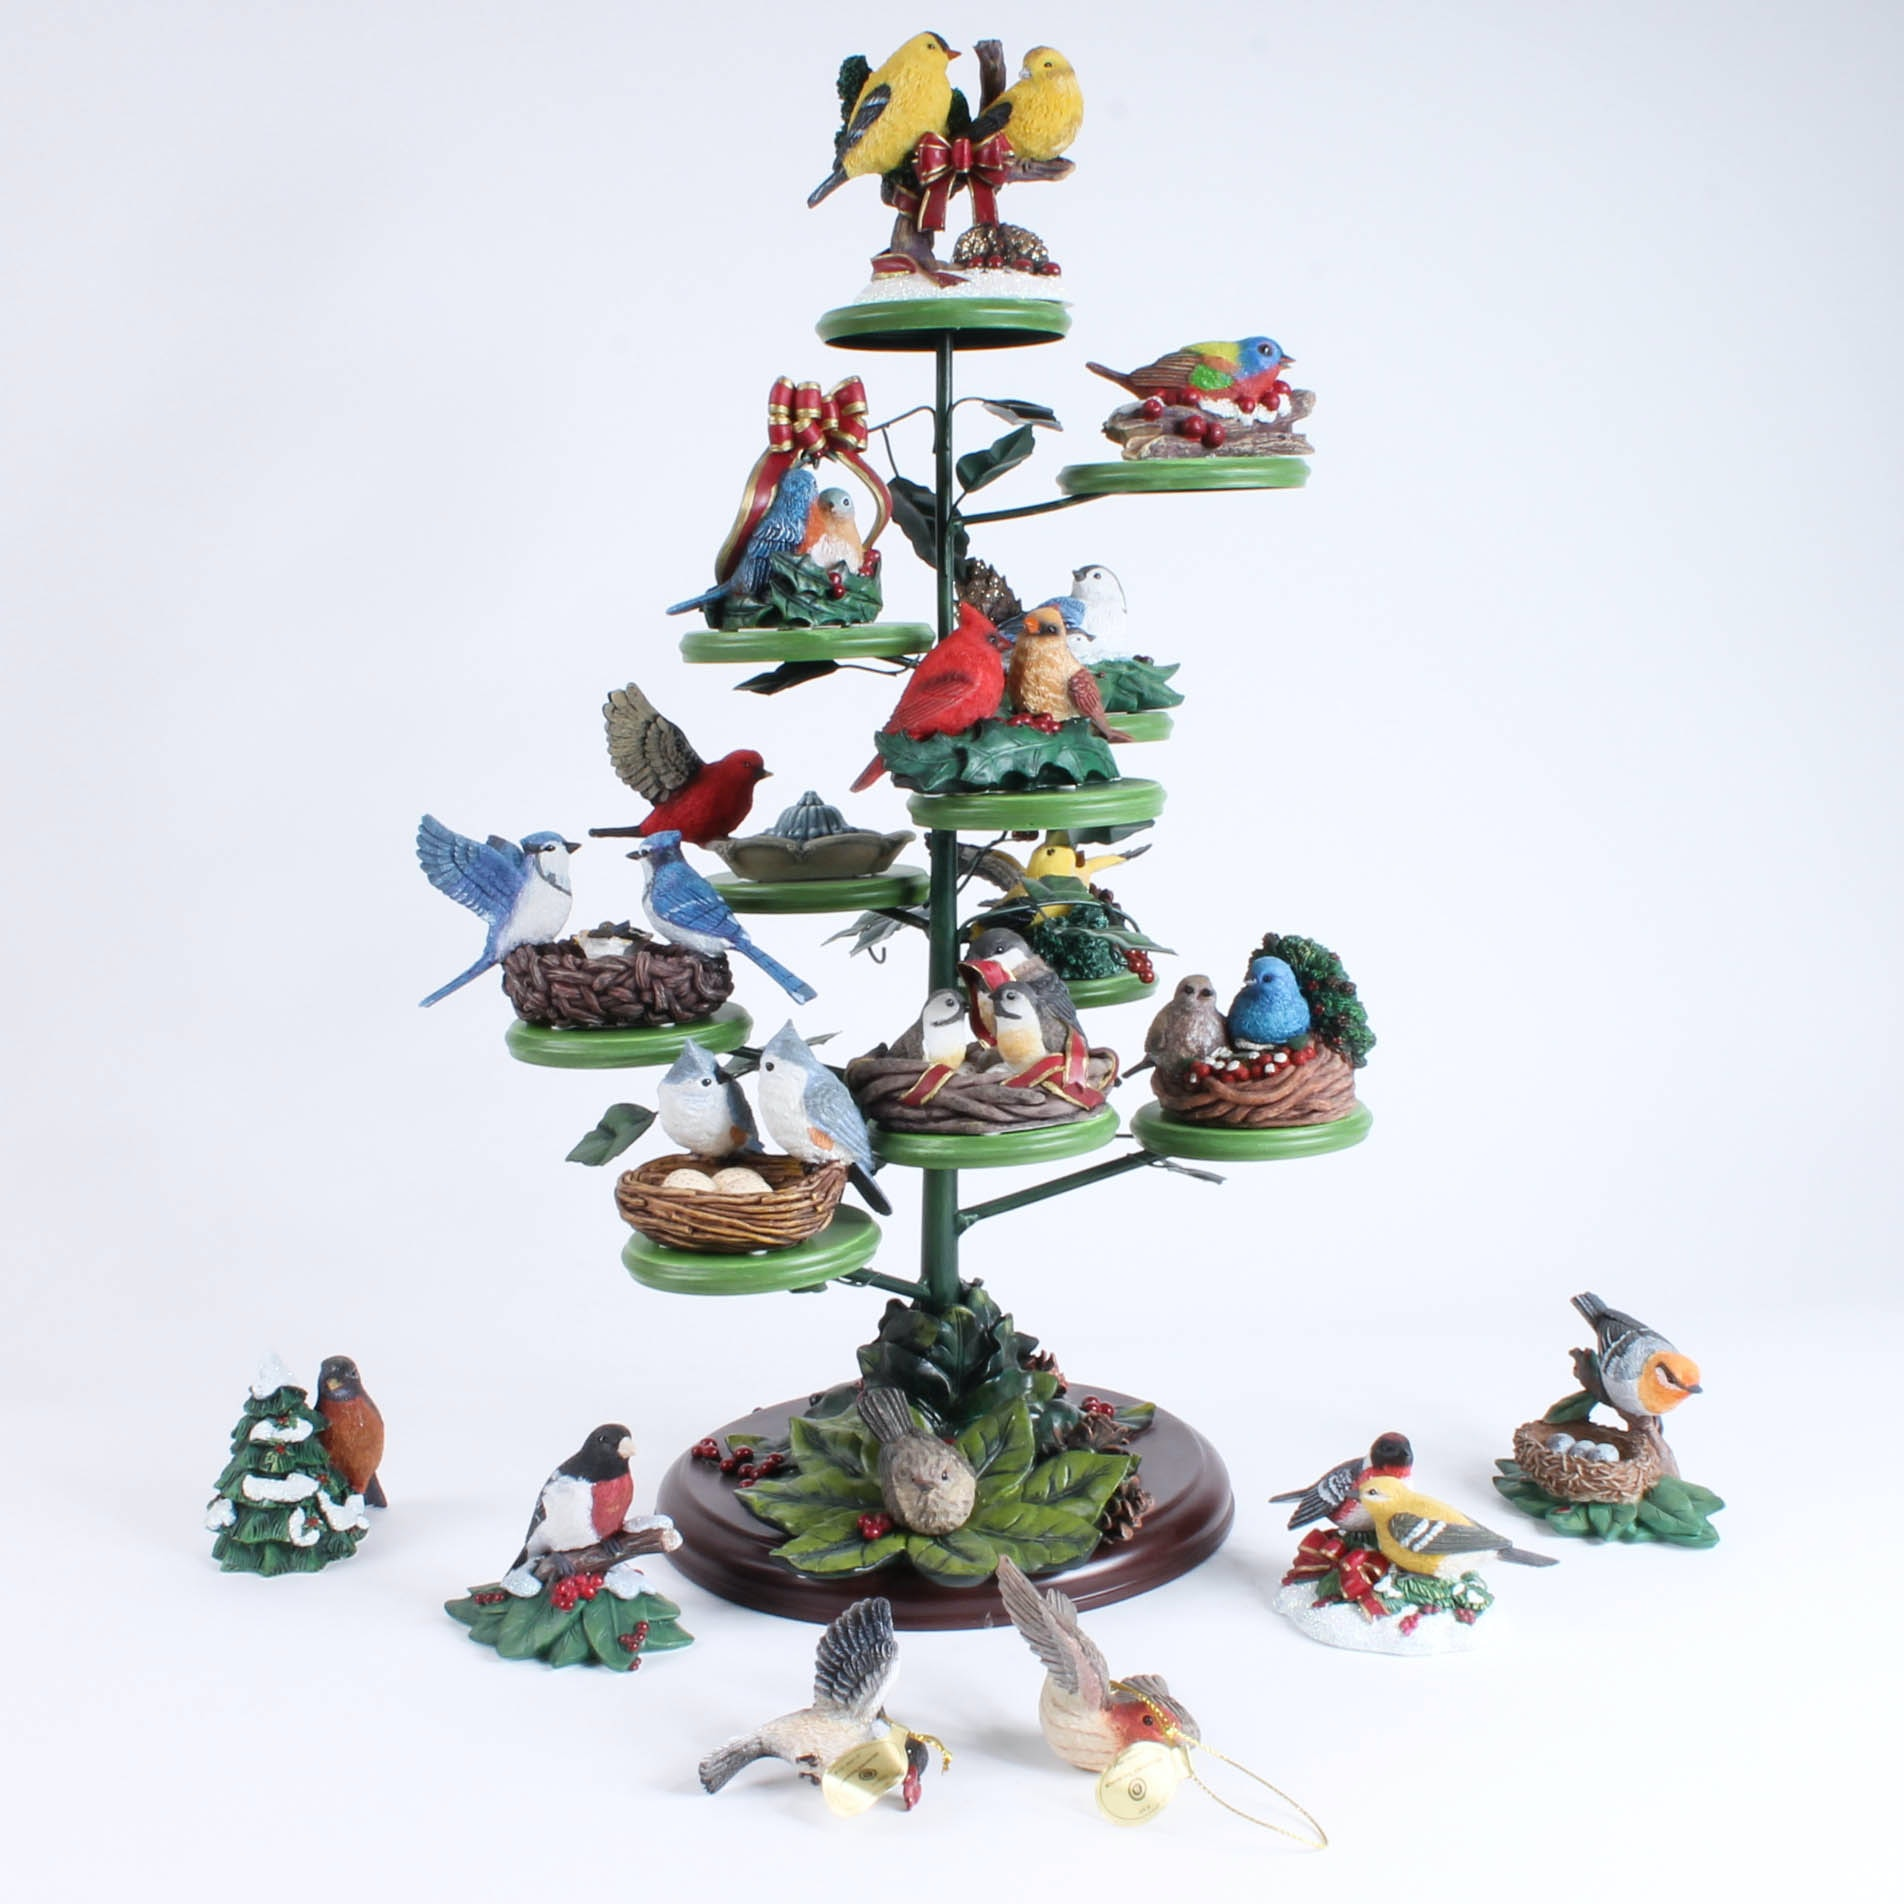 Holiday Figurines and Christmas Tree-Shaped Stand